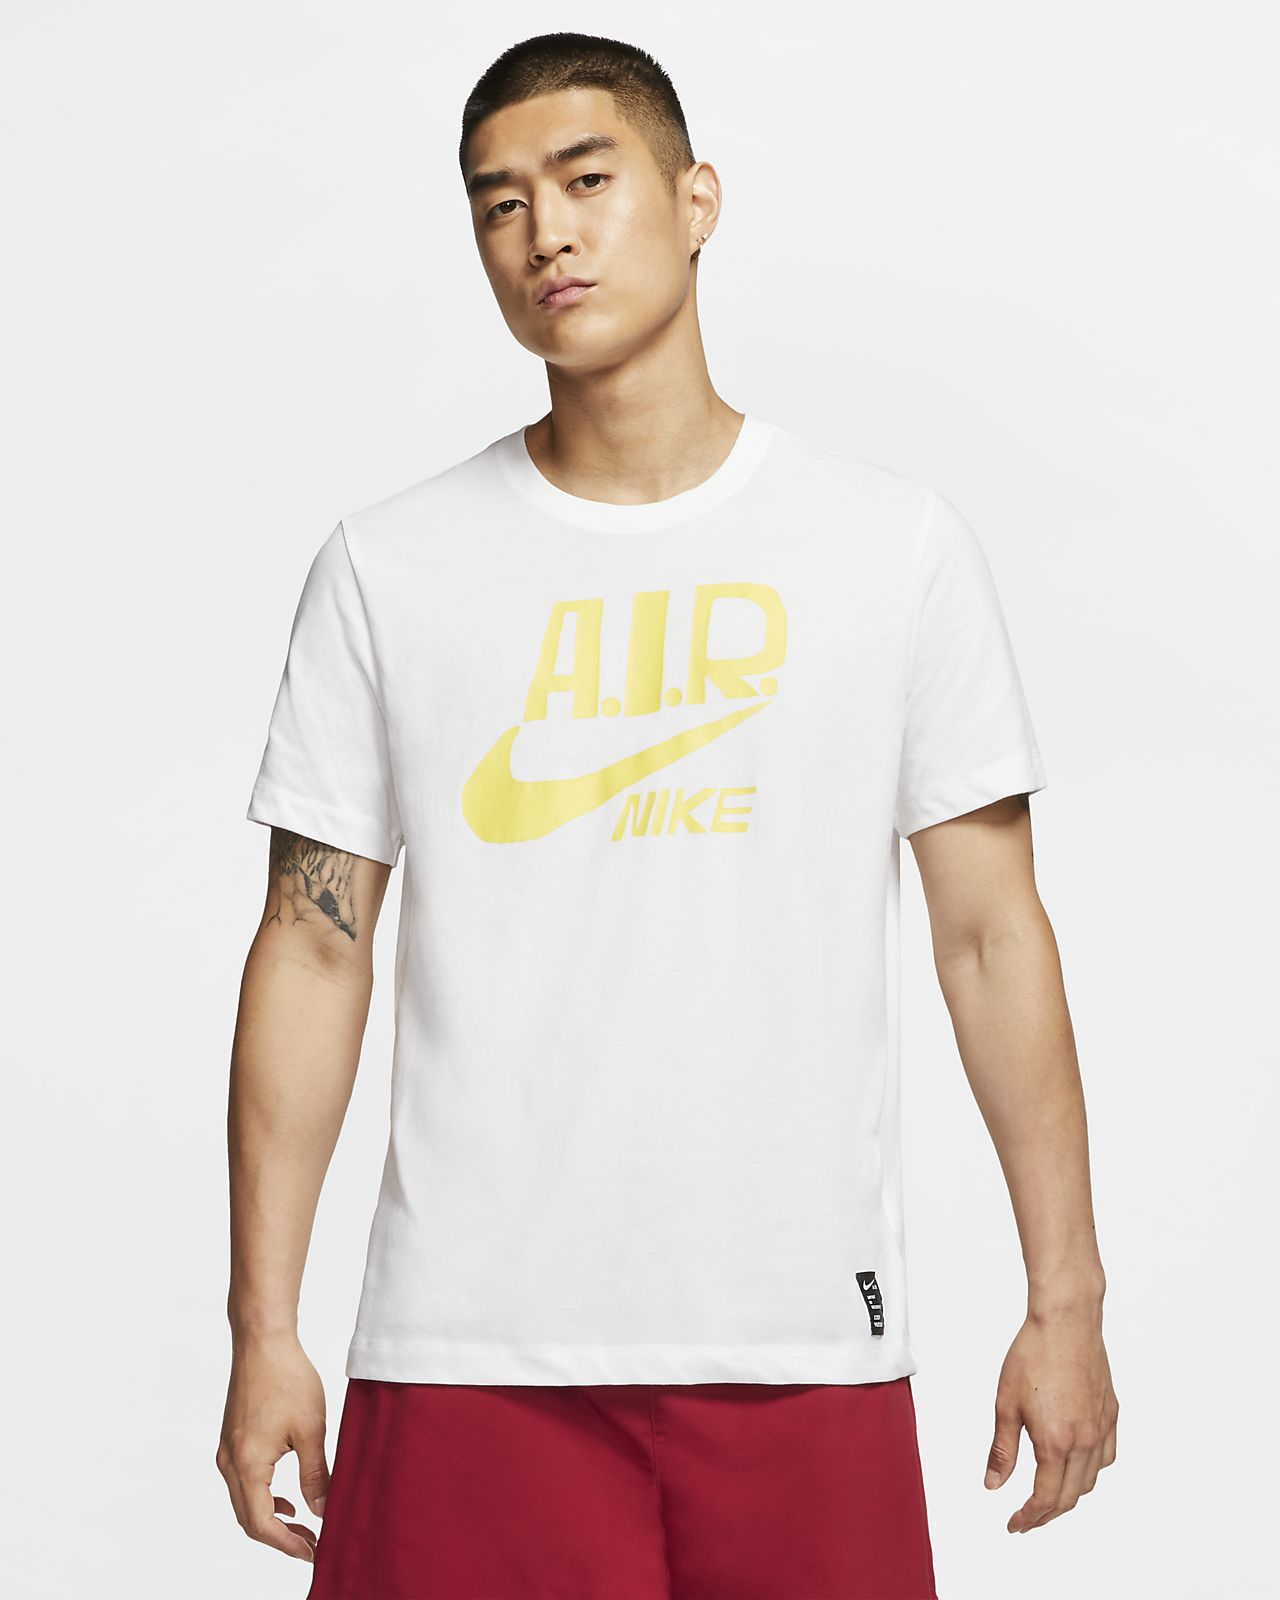 Nike Dri-FIT A.I.R. Tee-shirt de running pour Homme